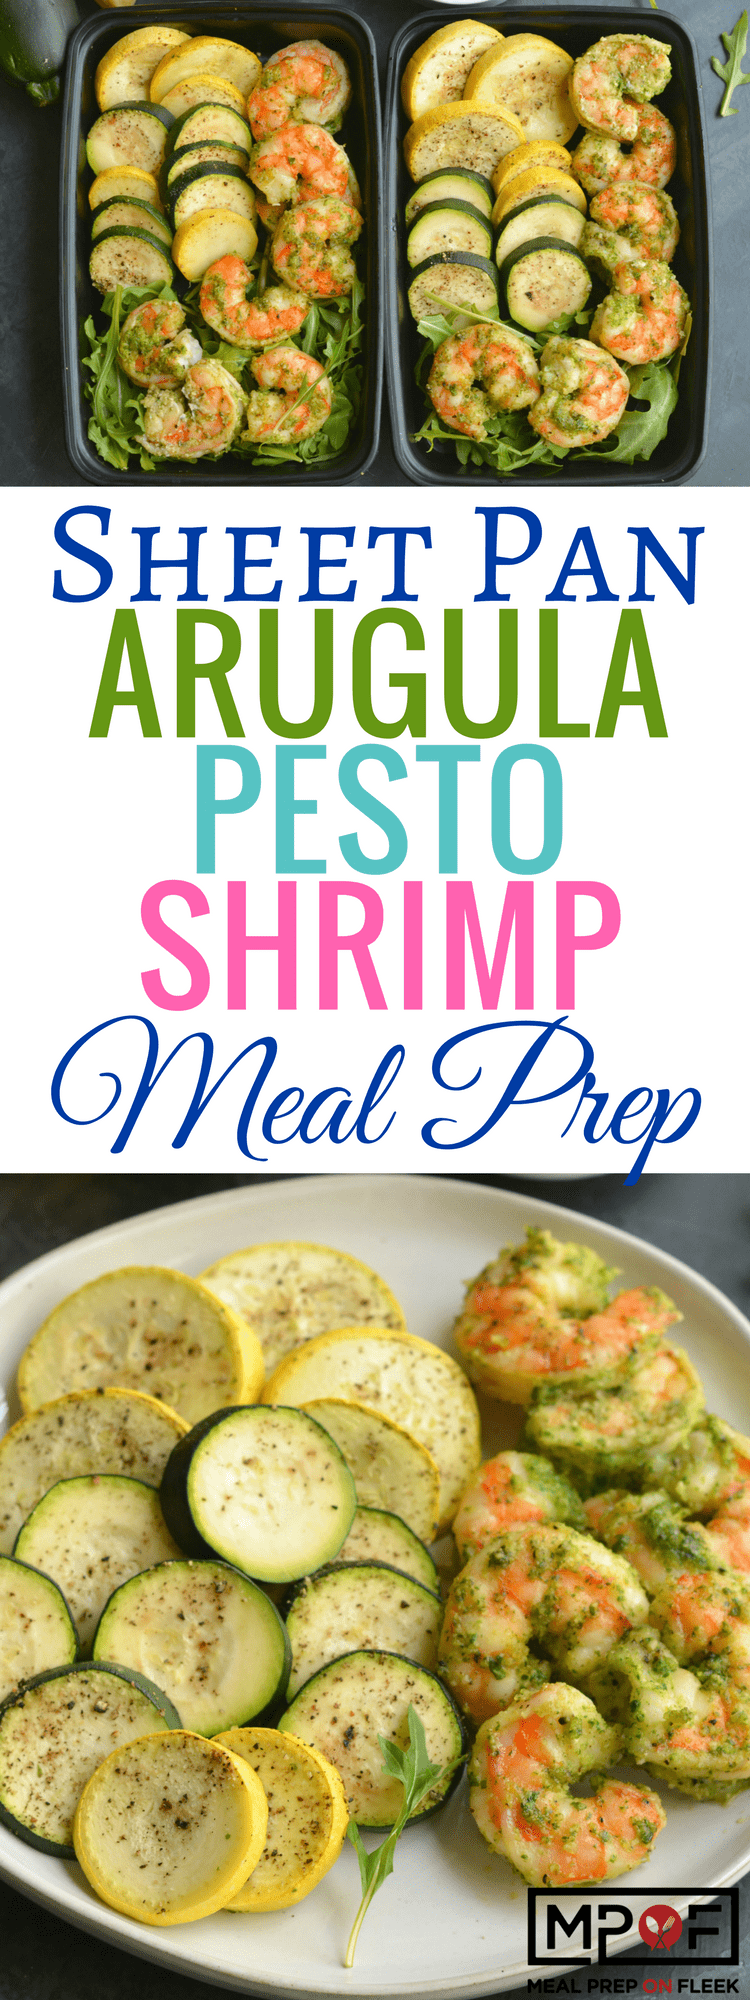 Sheet Pan Arugula Pesto Shrimp Meal Prep